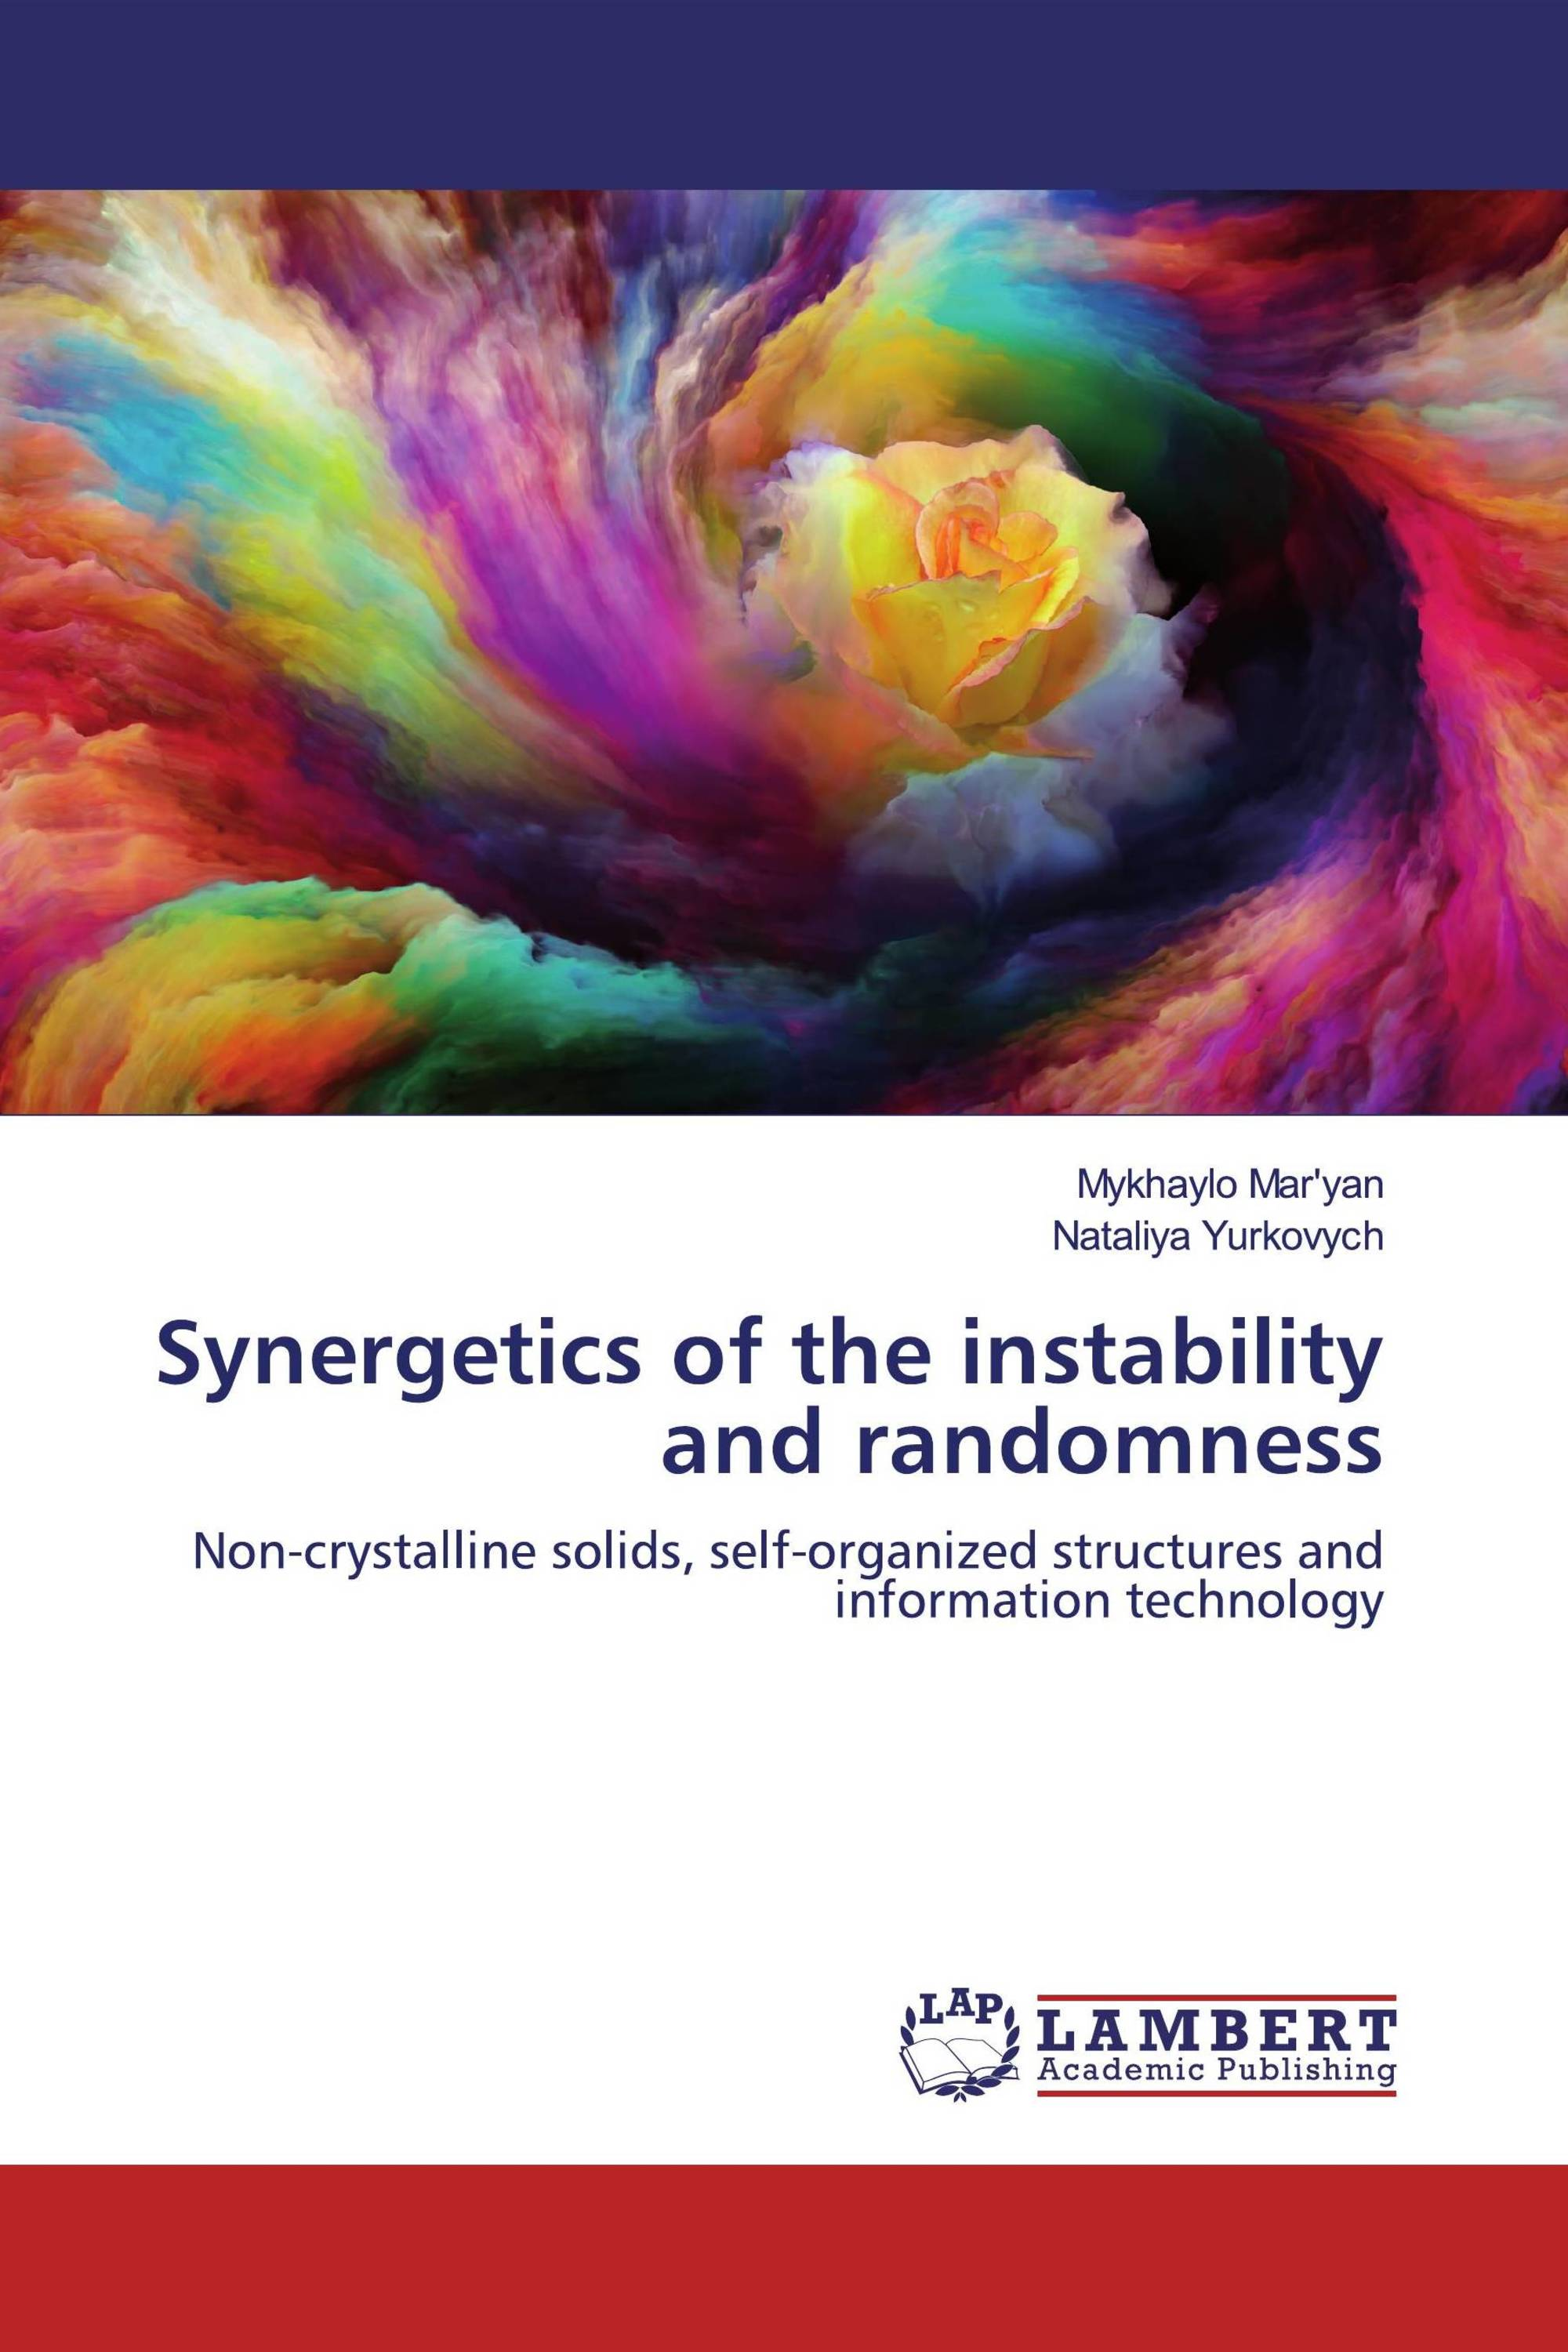 Synergetics of the instability and randomness